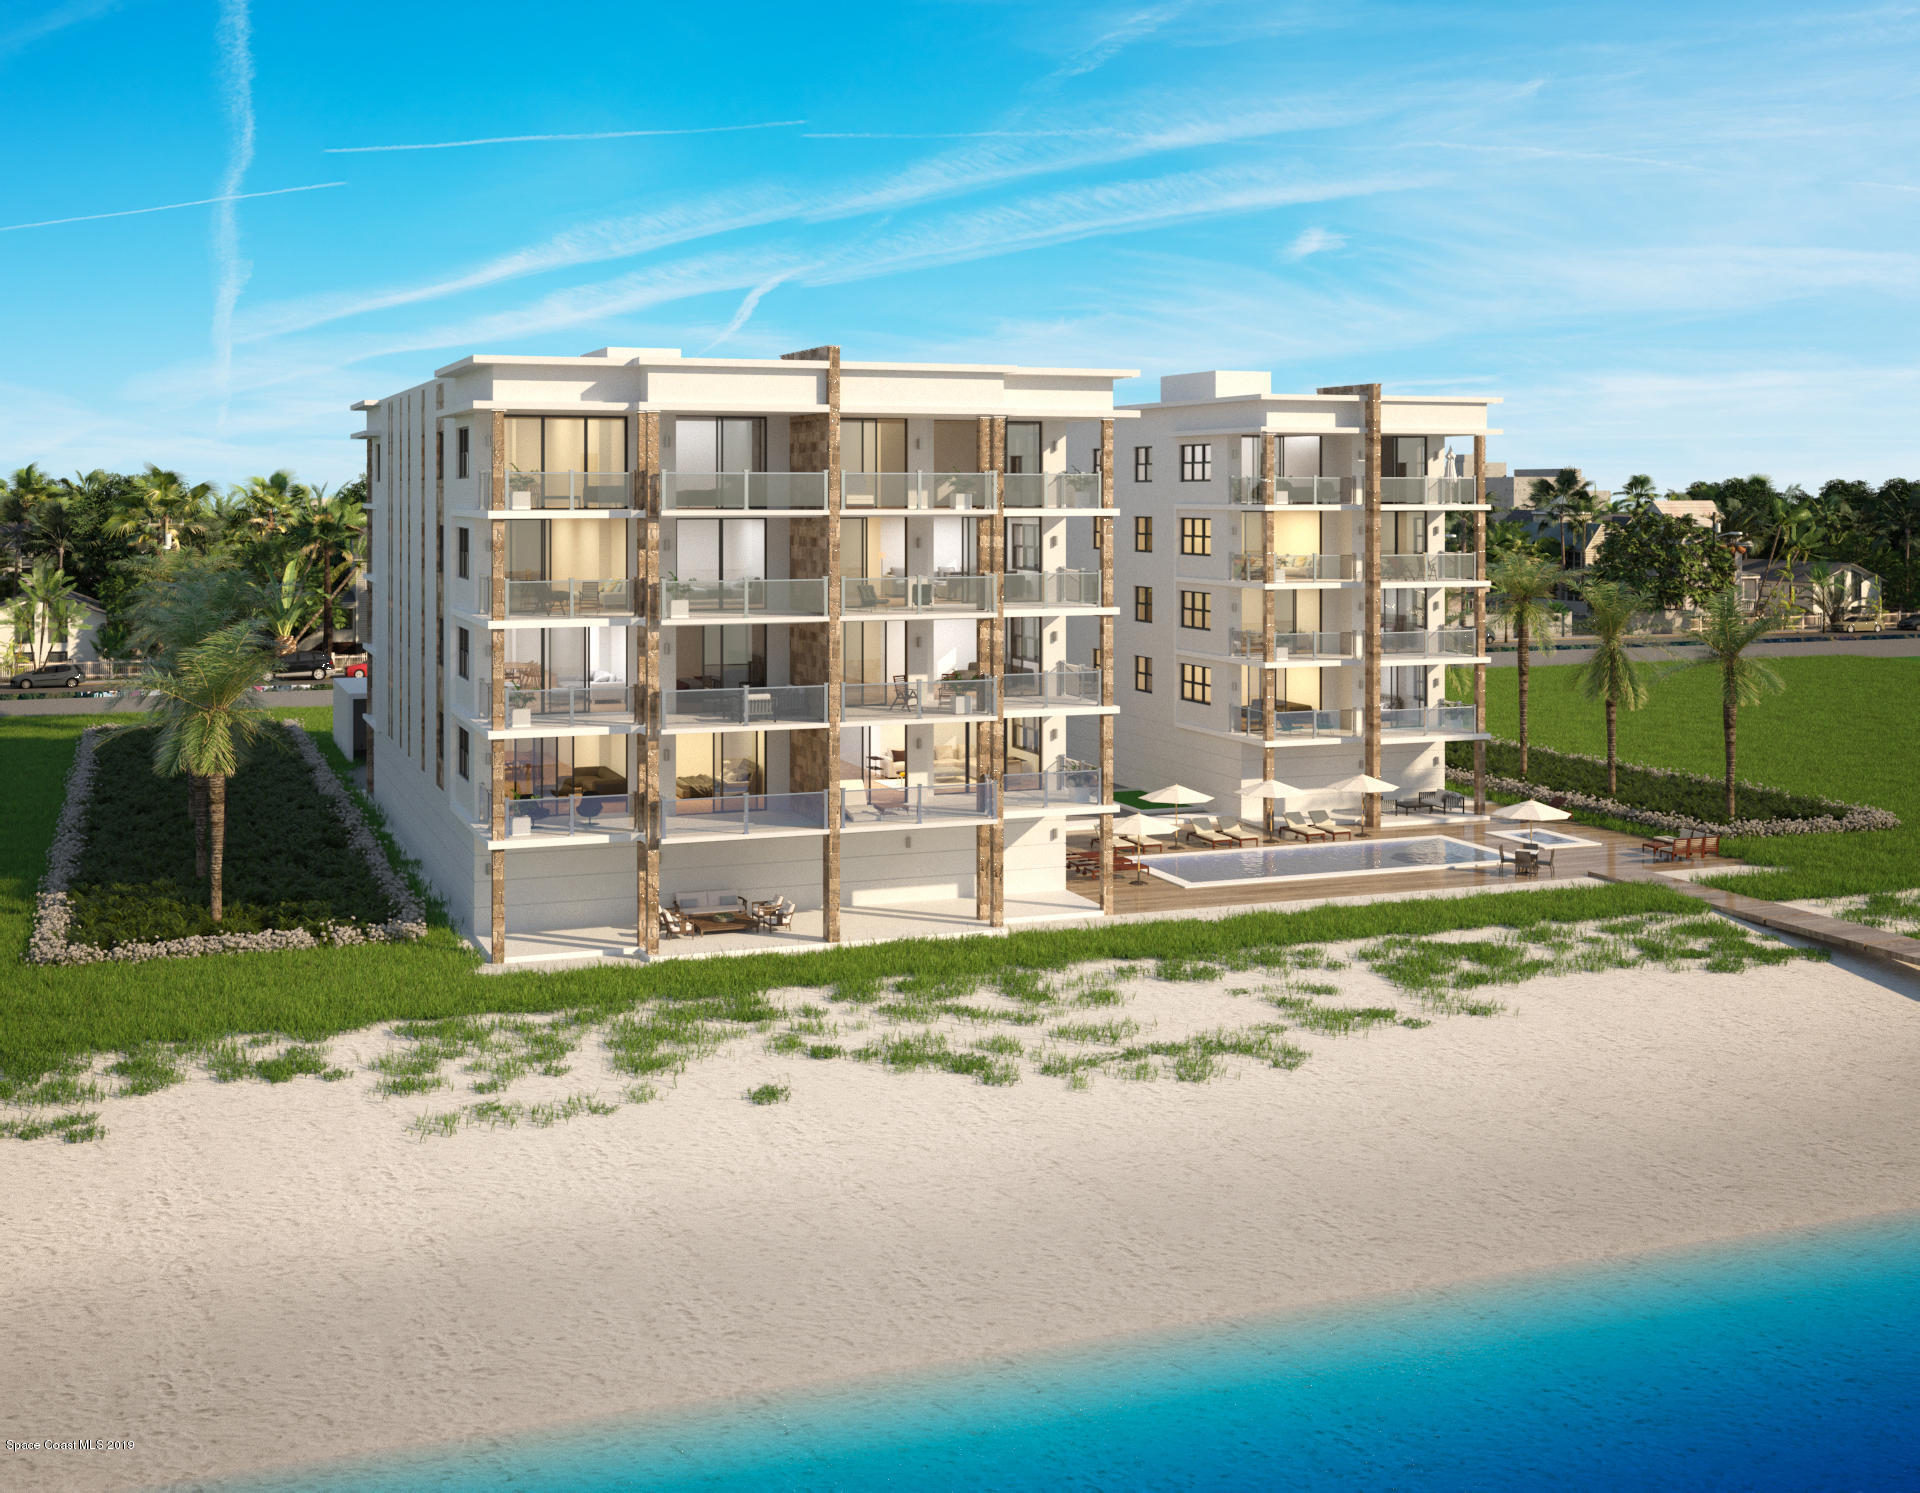 Property for Sale at 1645 N Highway A1A Indialantic, Florida 32903 United States